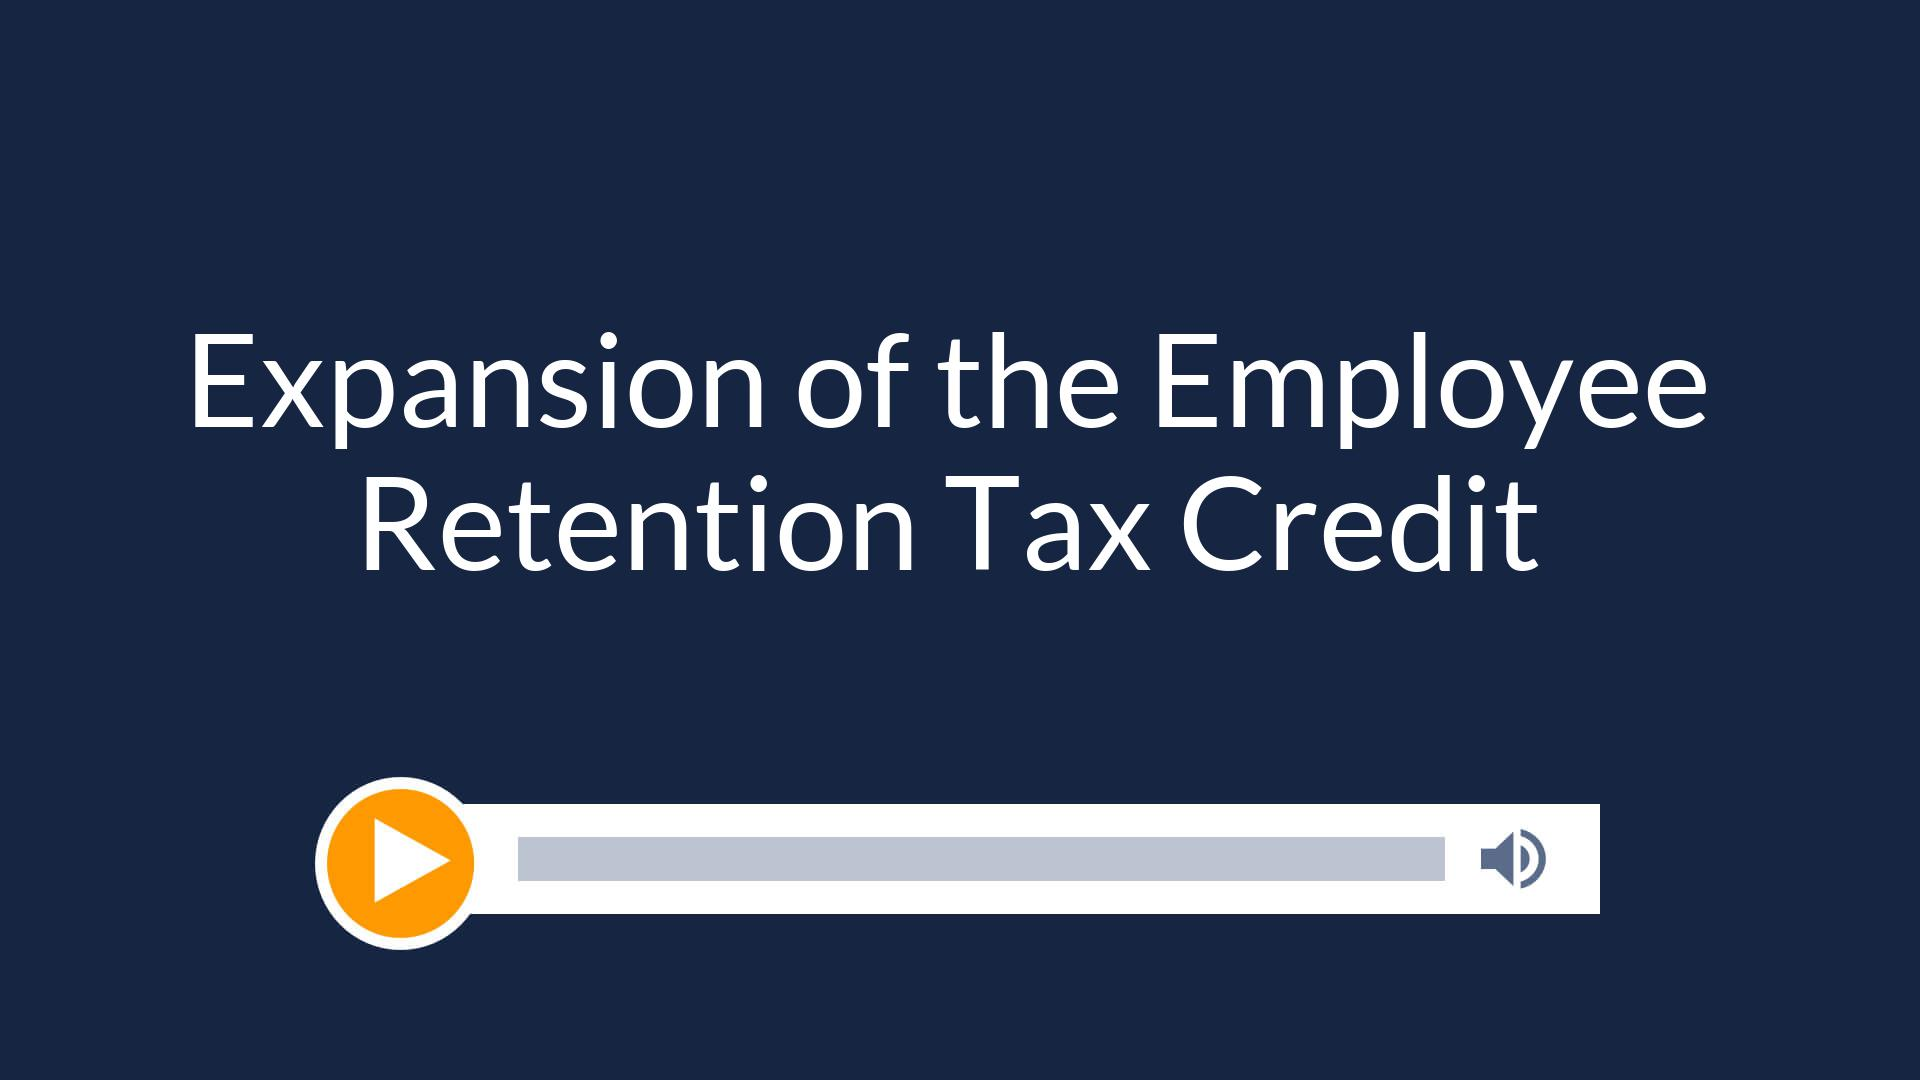 Expansion of the Employee Retention Tax Credit